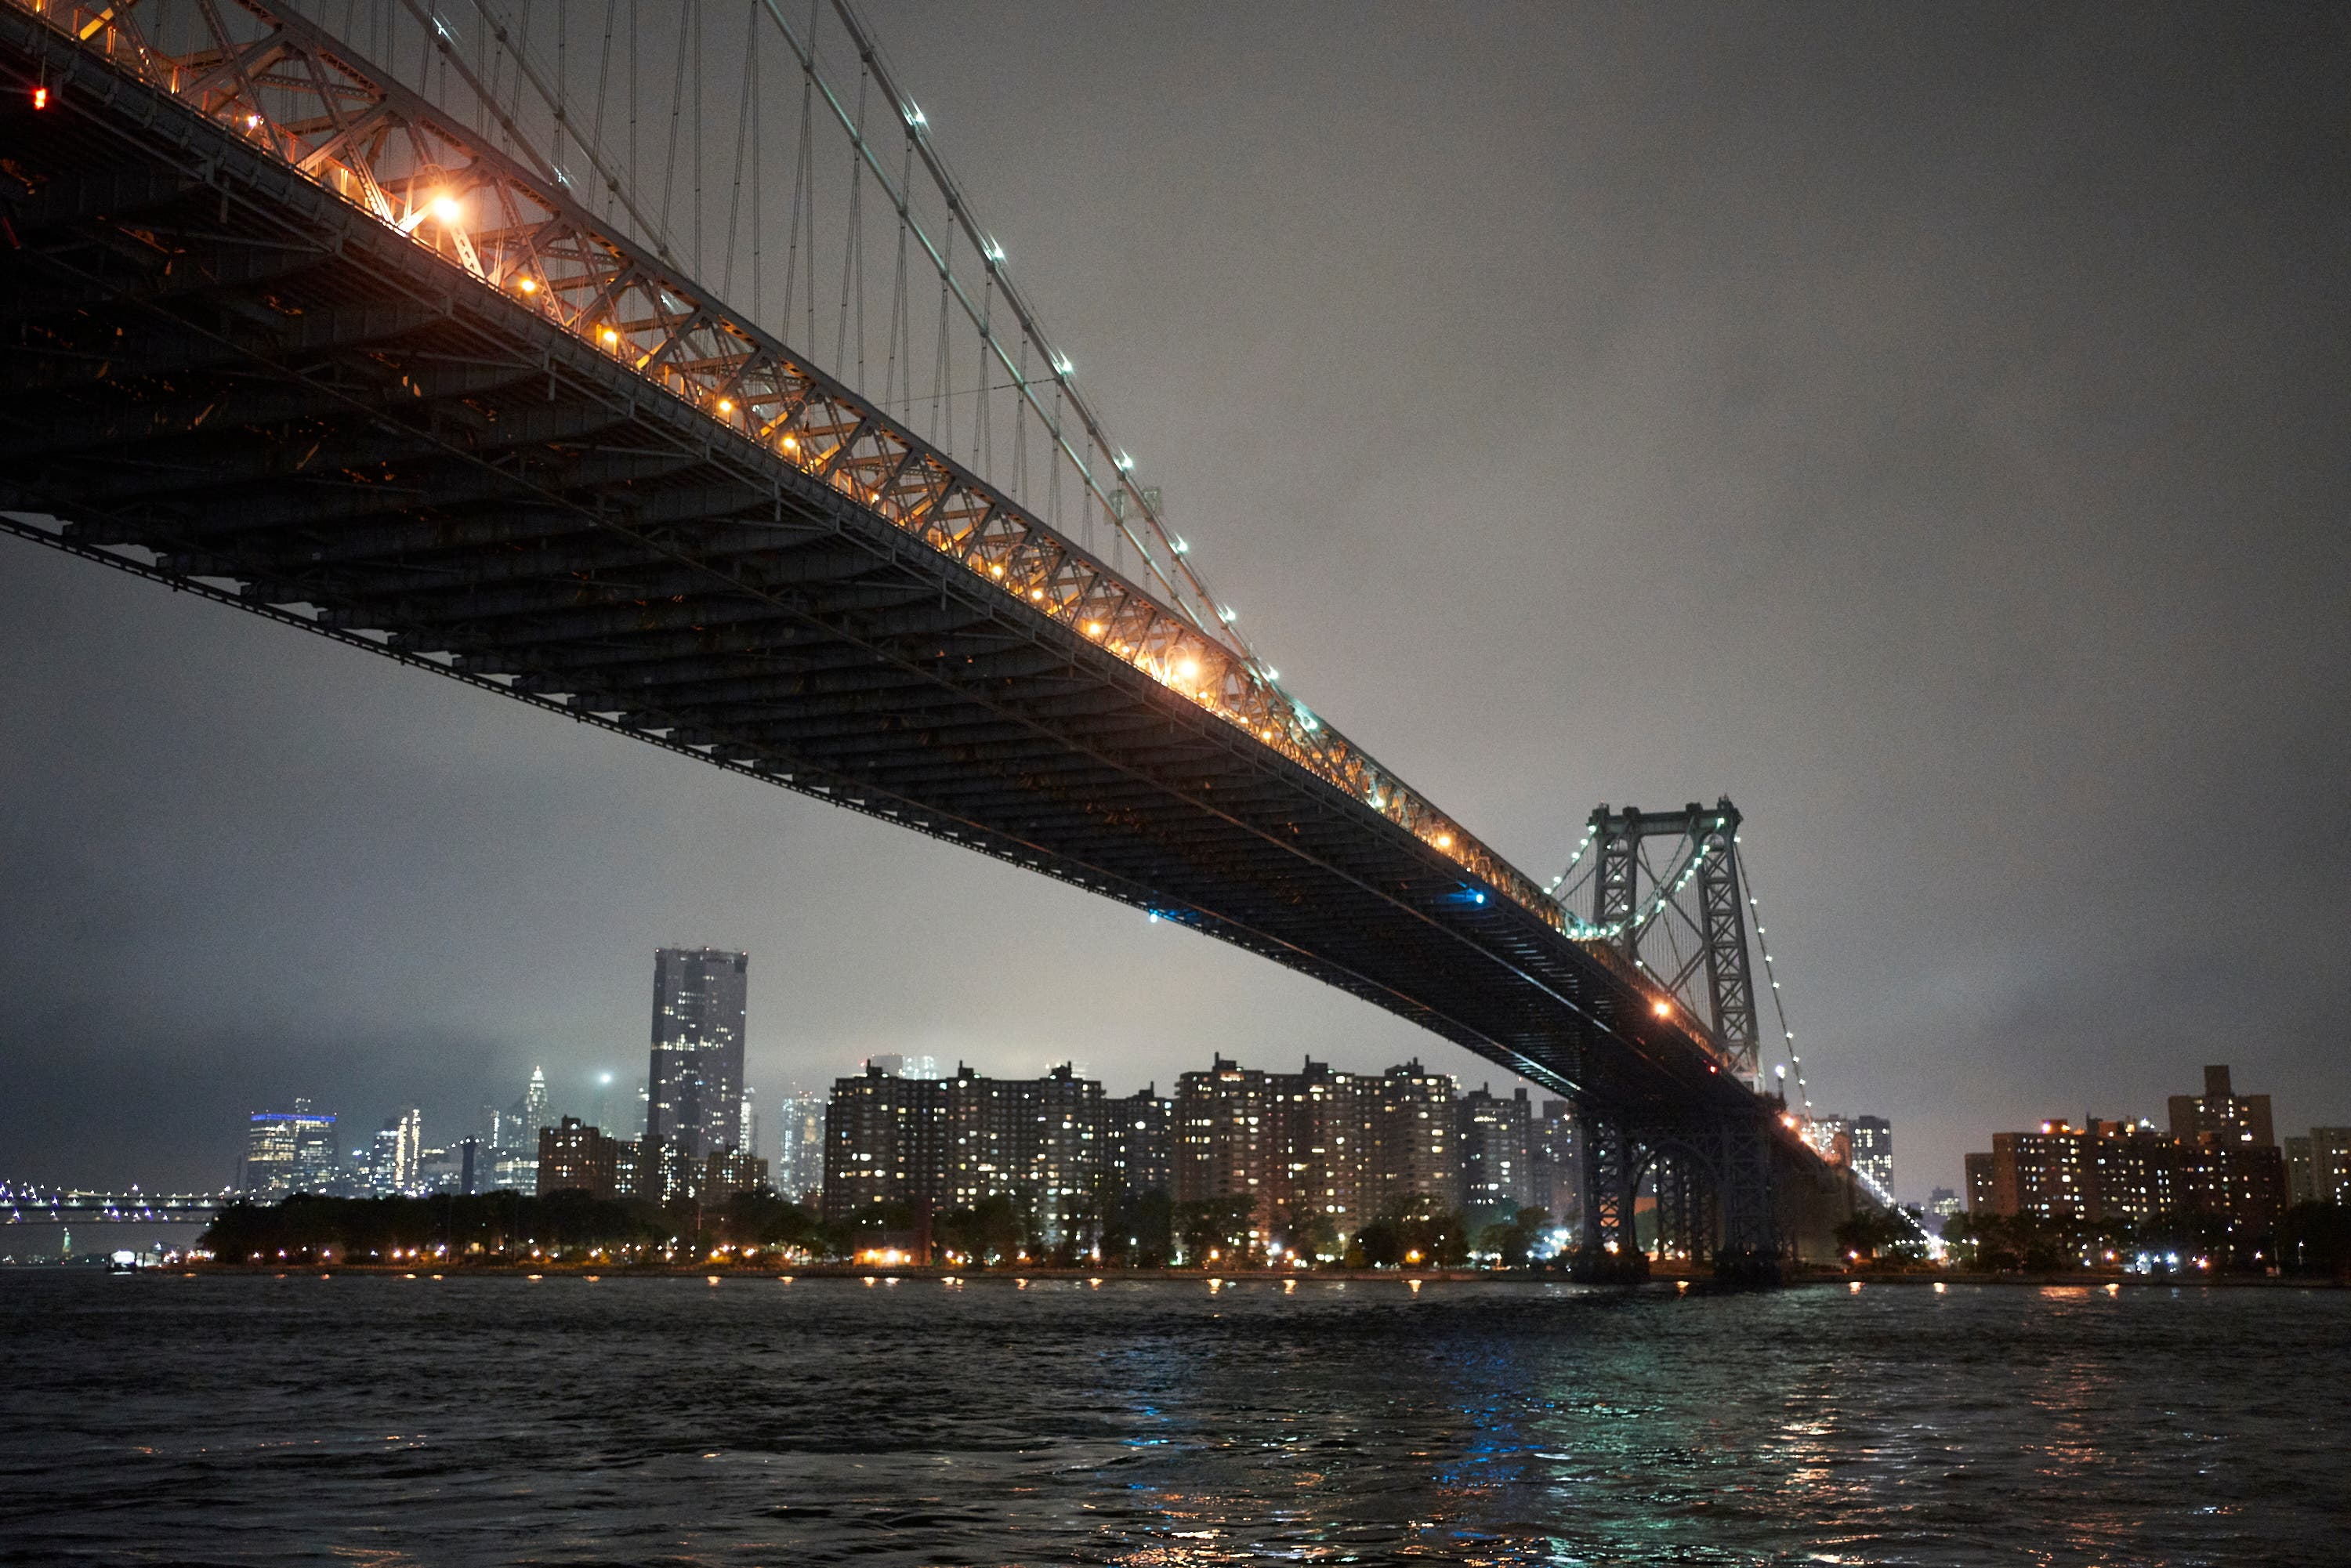 Photography Cheat Sheet: Shooting Long Exposures of Night City Scenes